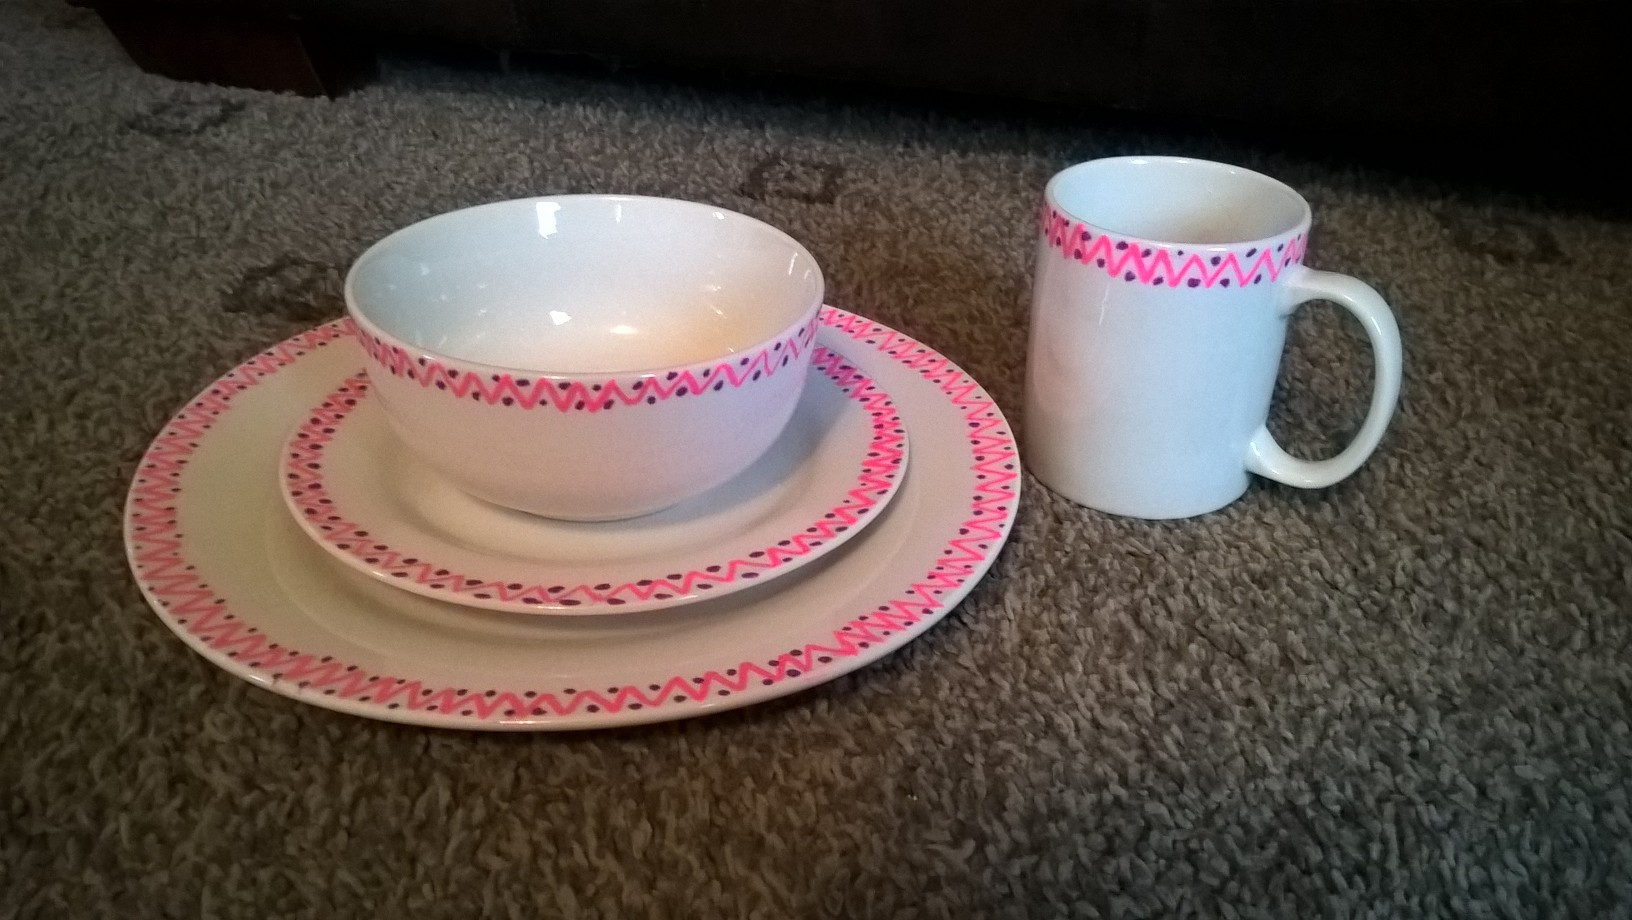 Chalkola Chalk Pens decorated Plate-Bowl-Cup